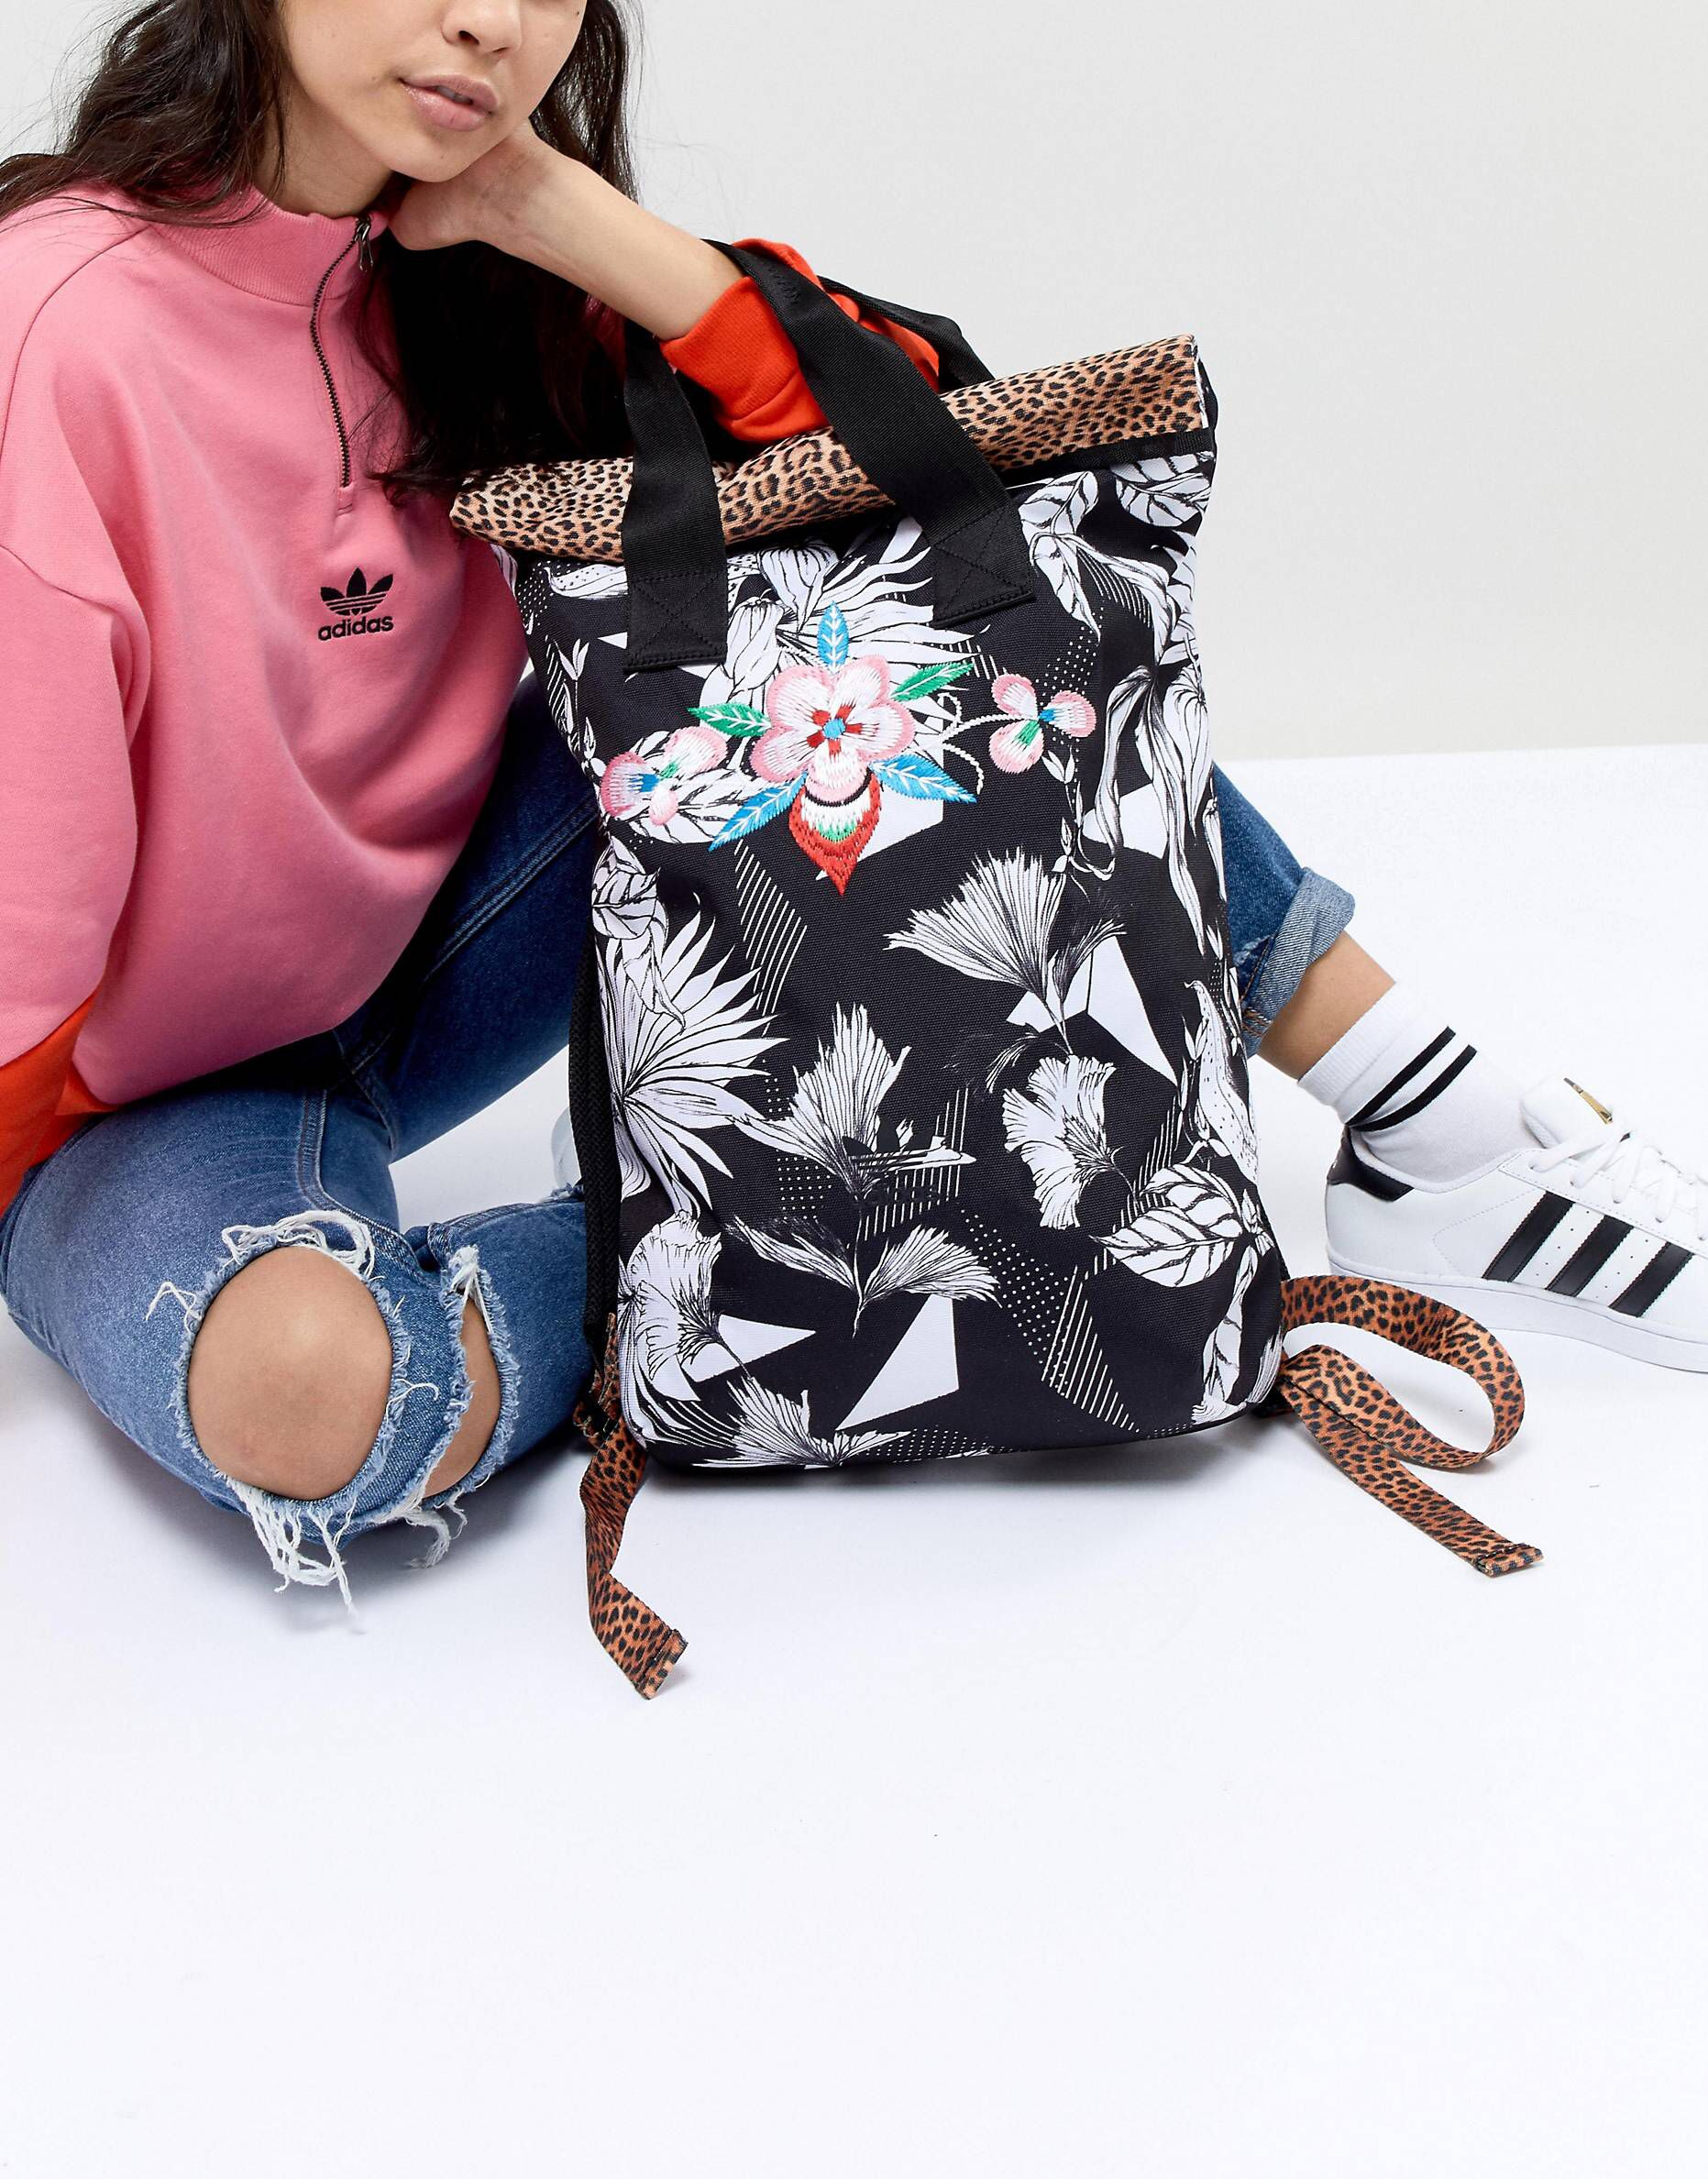 Just When I Thought I Didn T Need Something New From Asos I Kinda Do Adidas Originals Bags Adidas